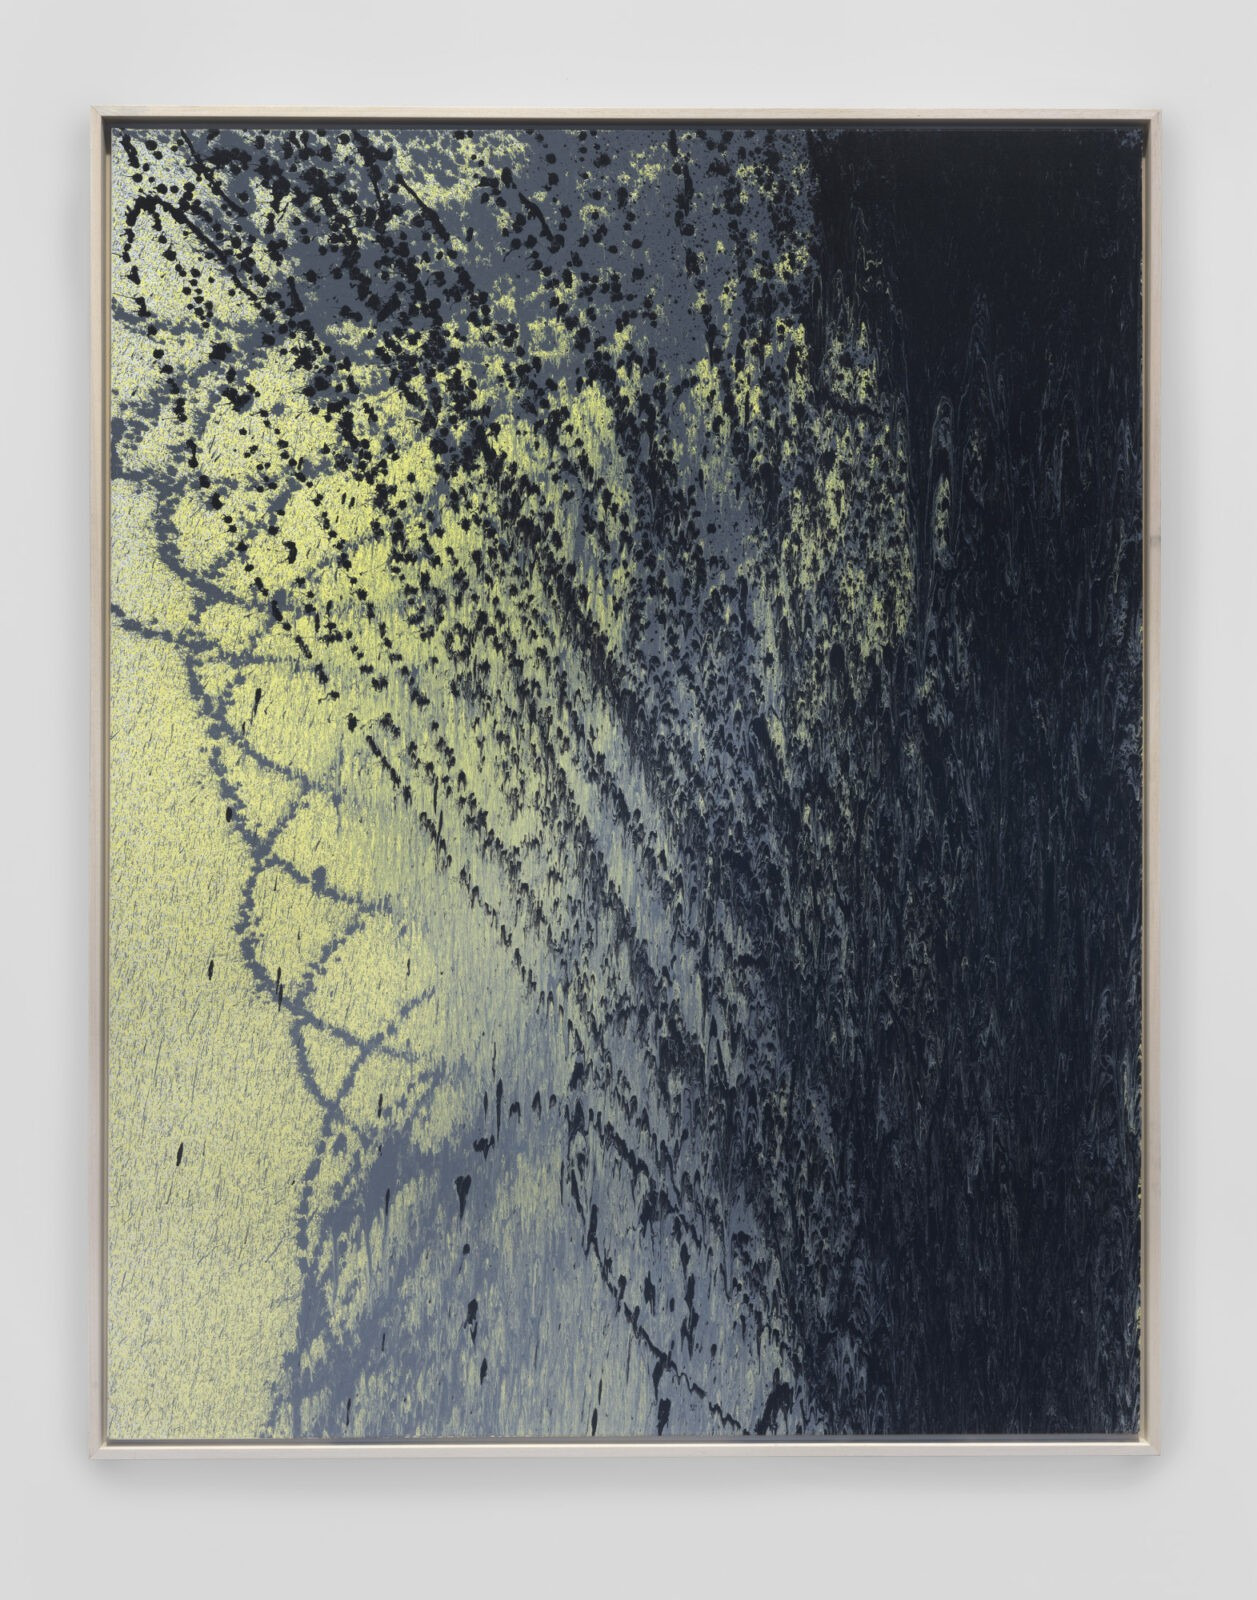 Exhibition at Simon Lee Gallery Celebrates The Highly Productive Decade of Hans Hartung's Life